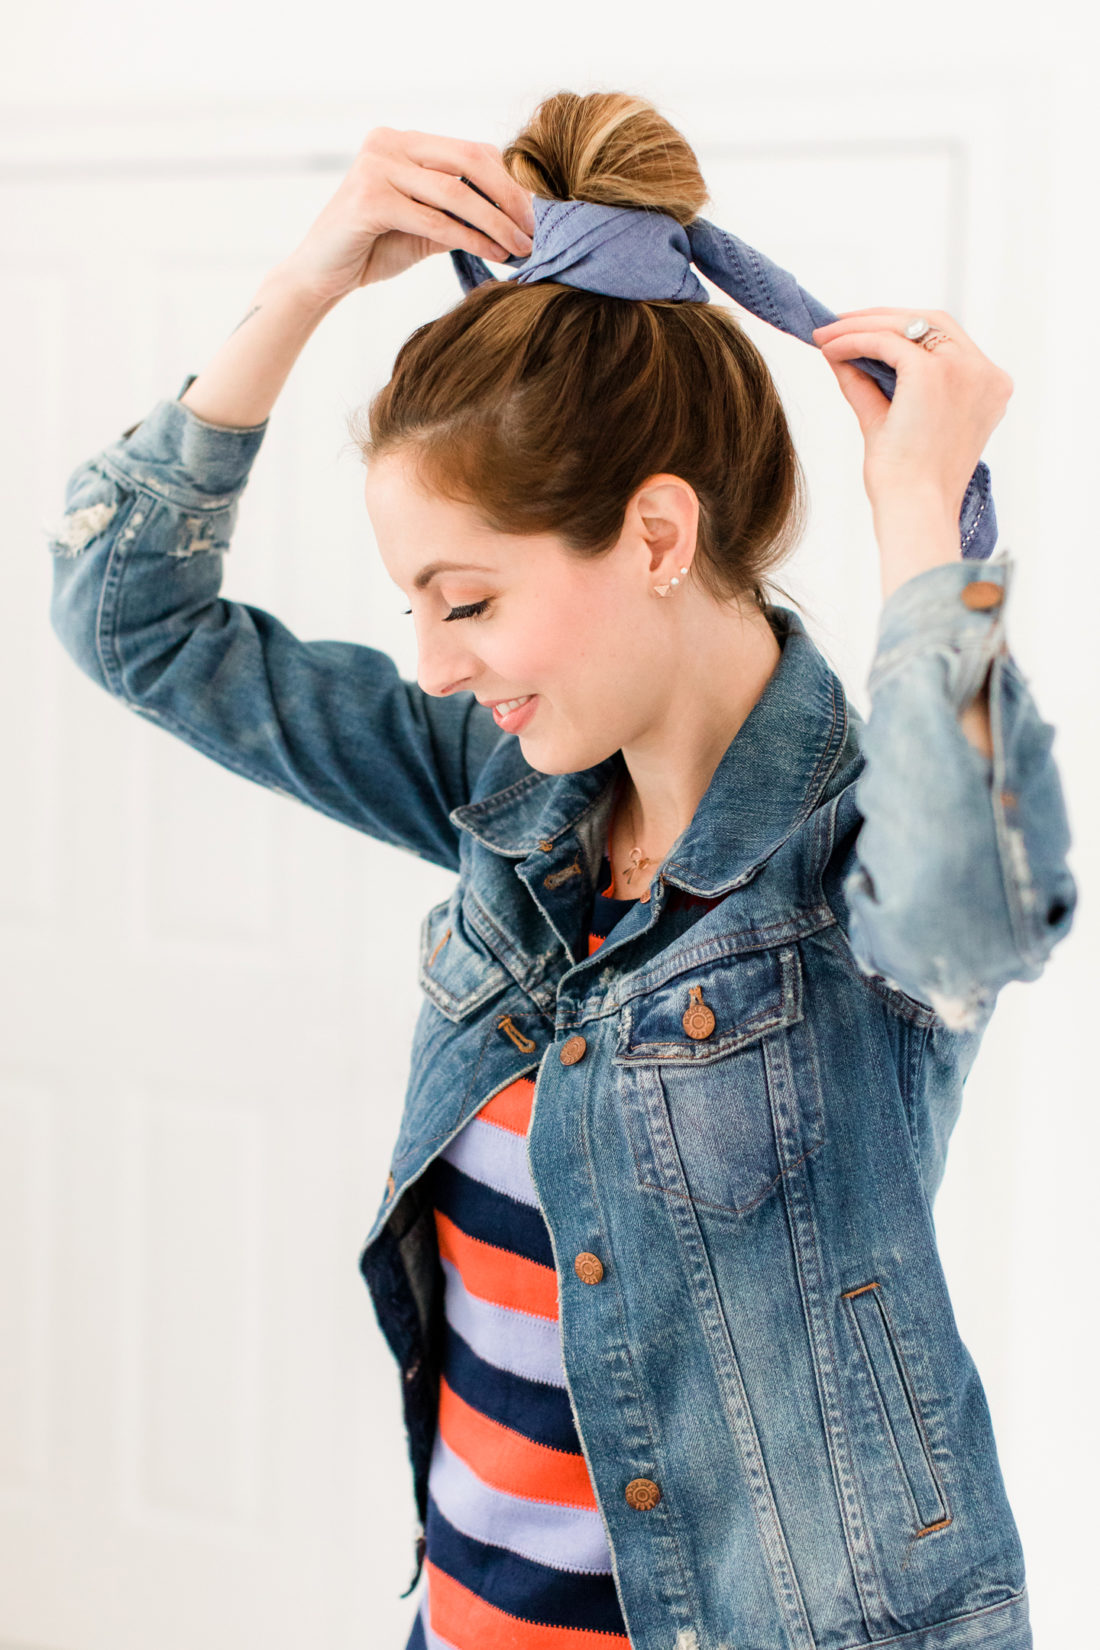 Eva Amurri Martino wears a striped dress and denim jacket, and wraps a linen kerchief around her bun to make a hairstyle